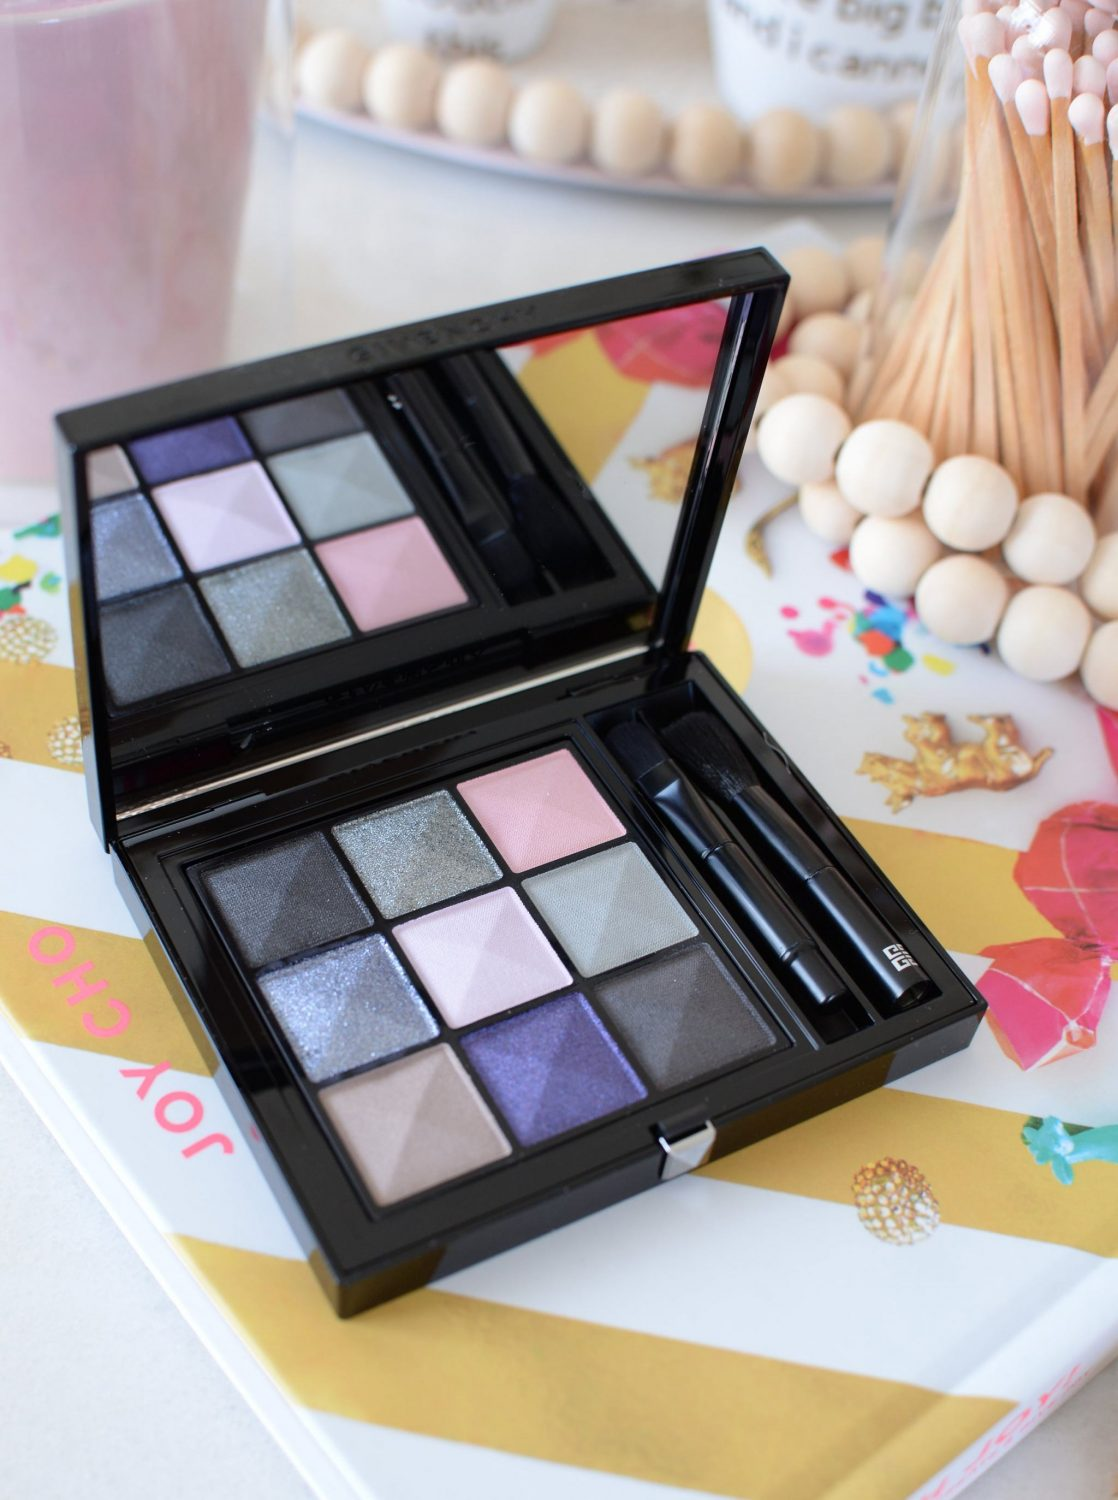 Givenchy Le 9 De Givenchy Eyeshadow Palette in Cool